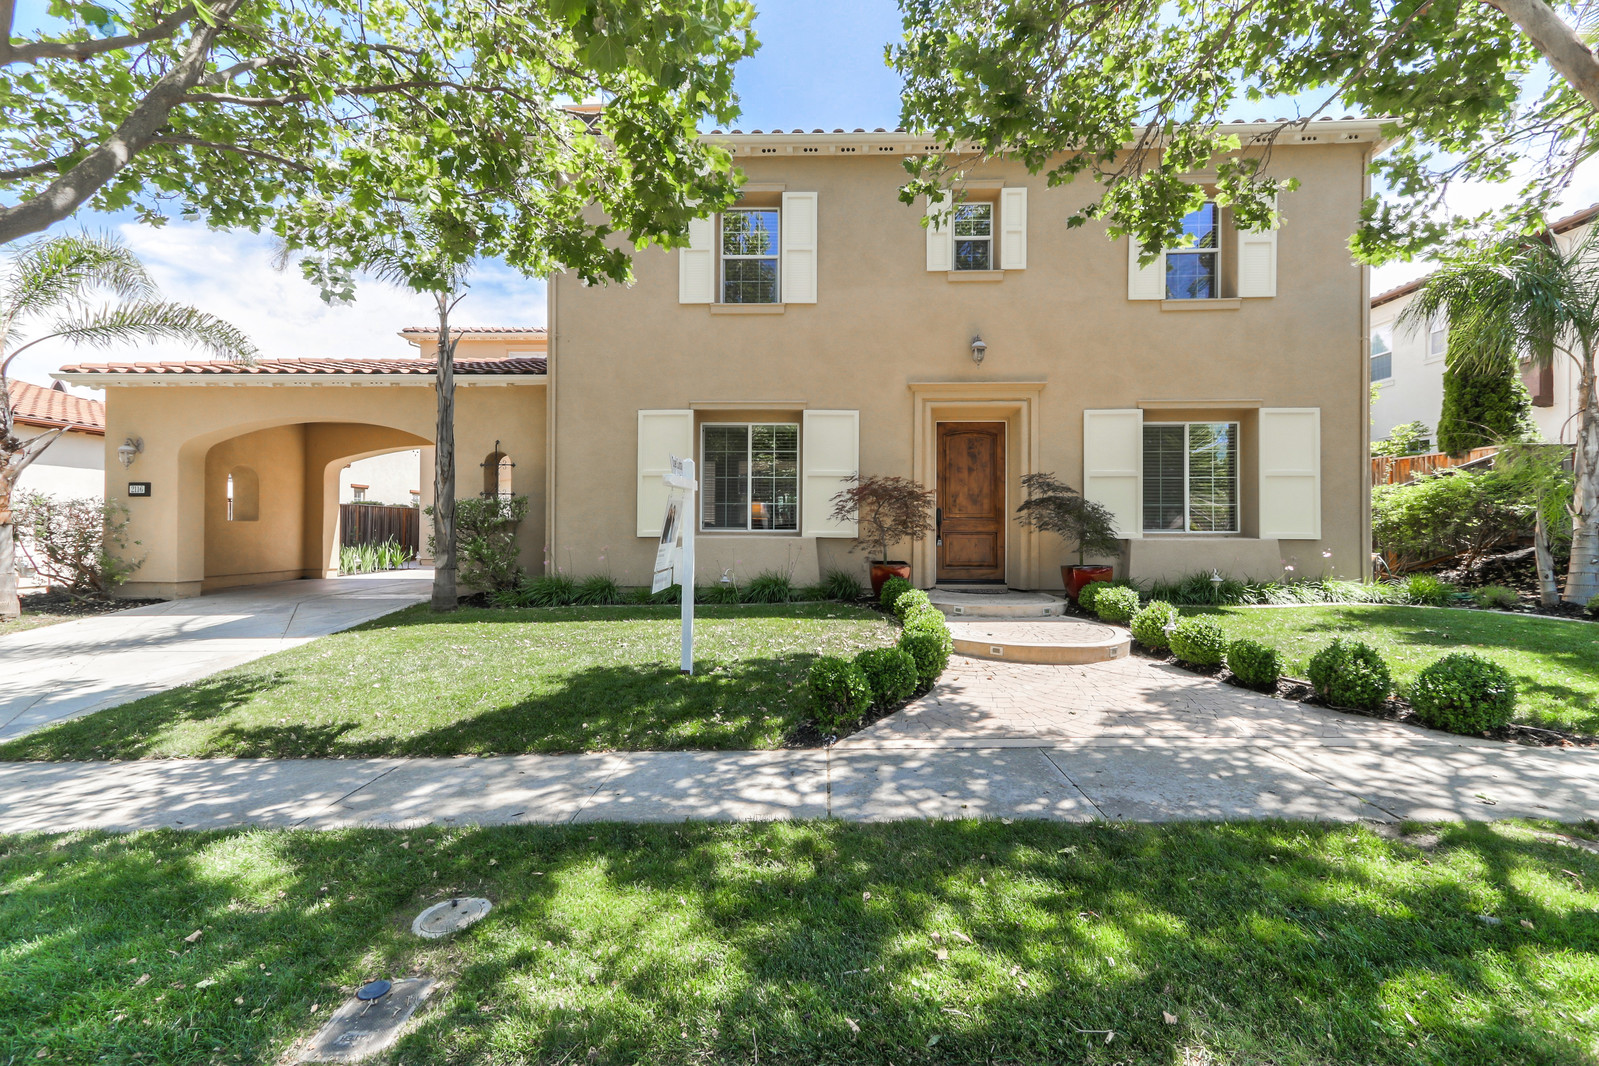 Stunning home located in the premium Gallery neighborhood of Gale Ranch features an open flexible floor plan, in-law suite and stunning views